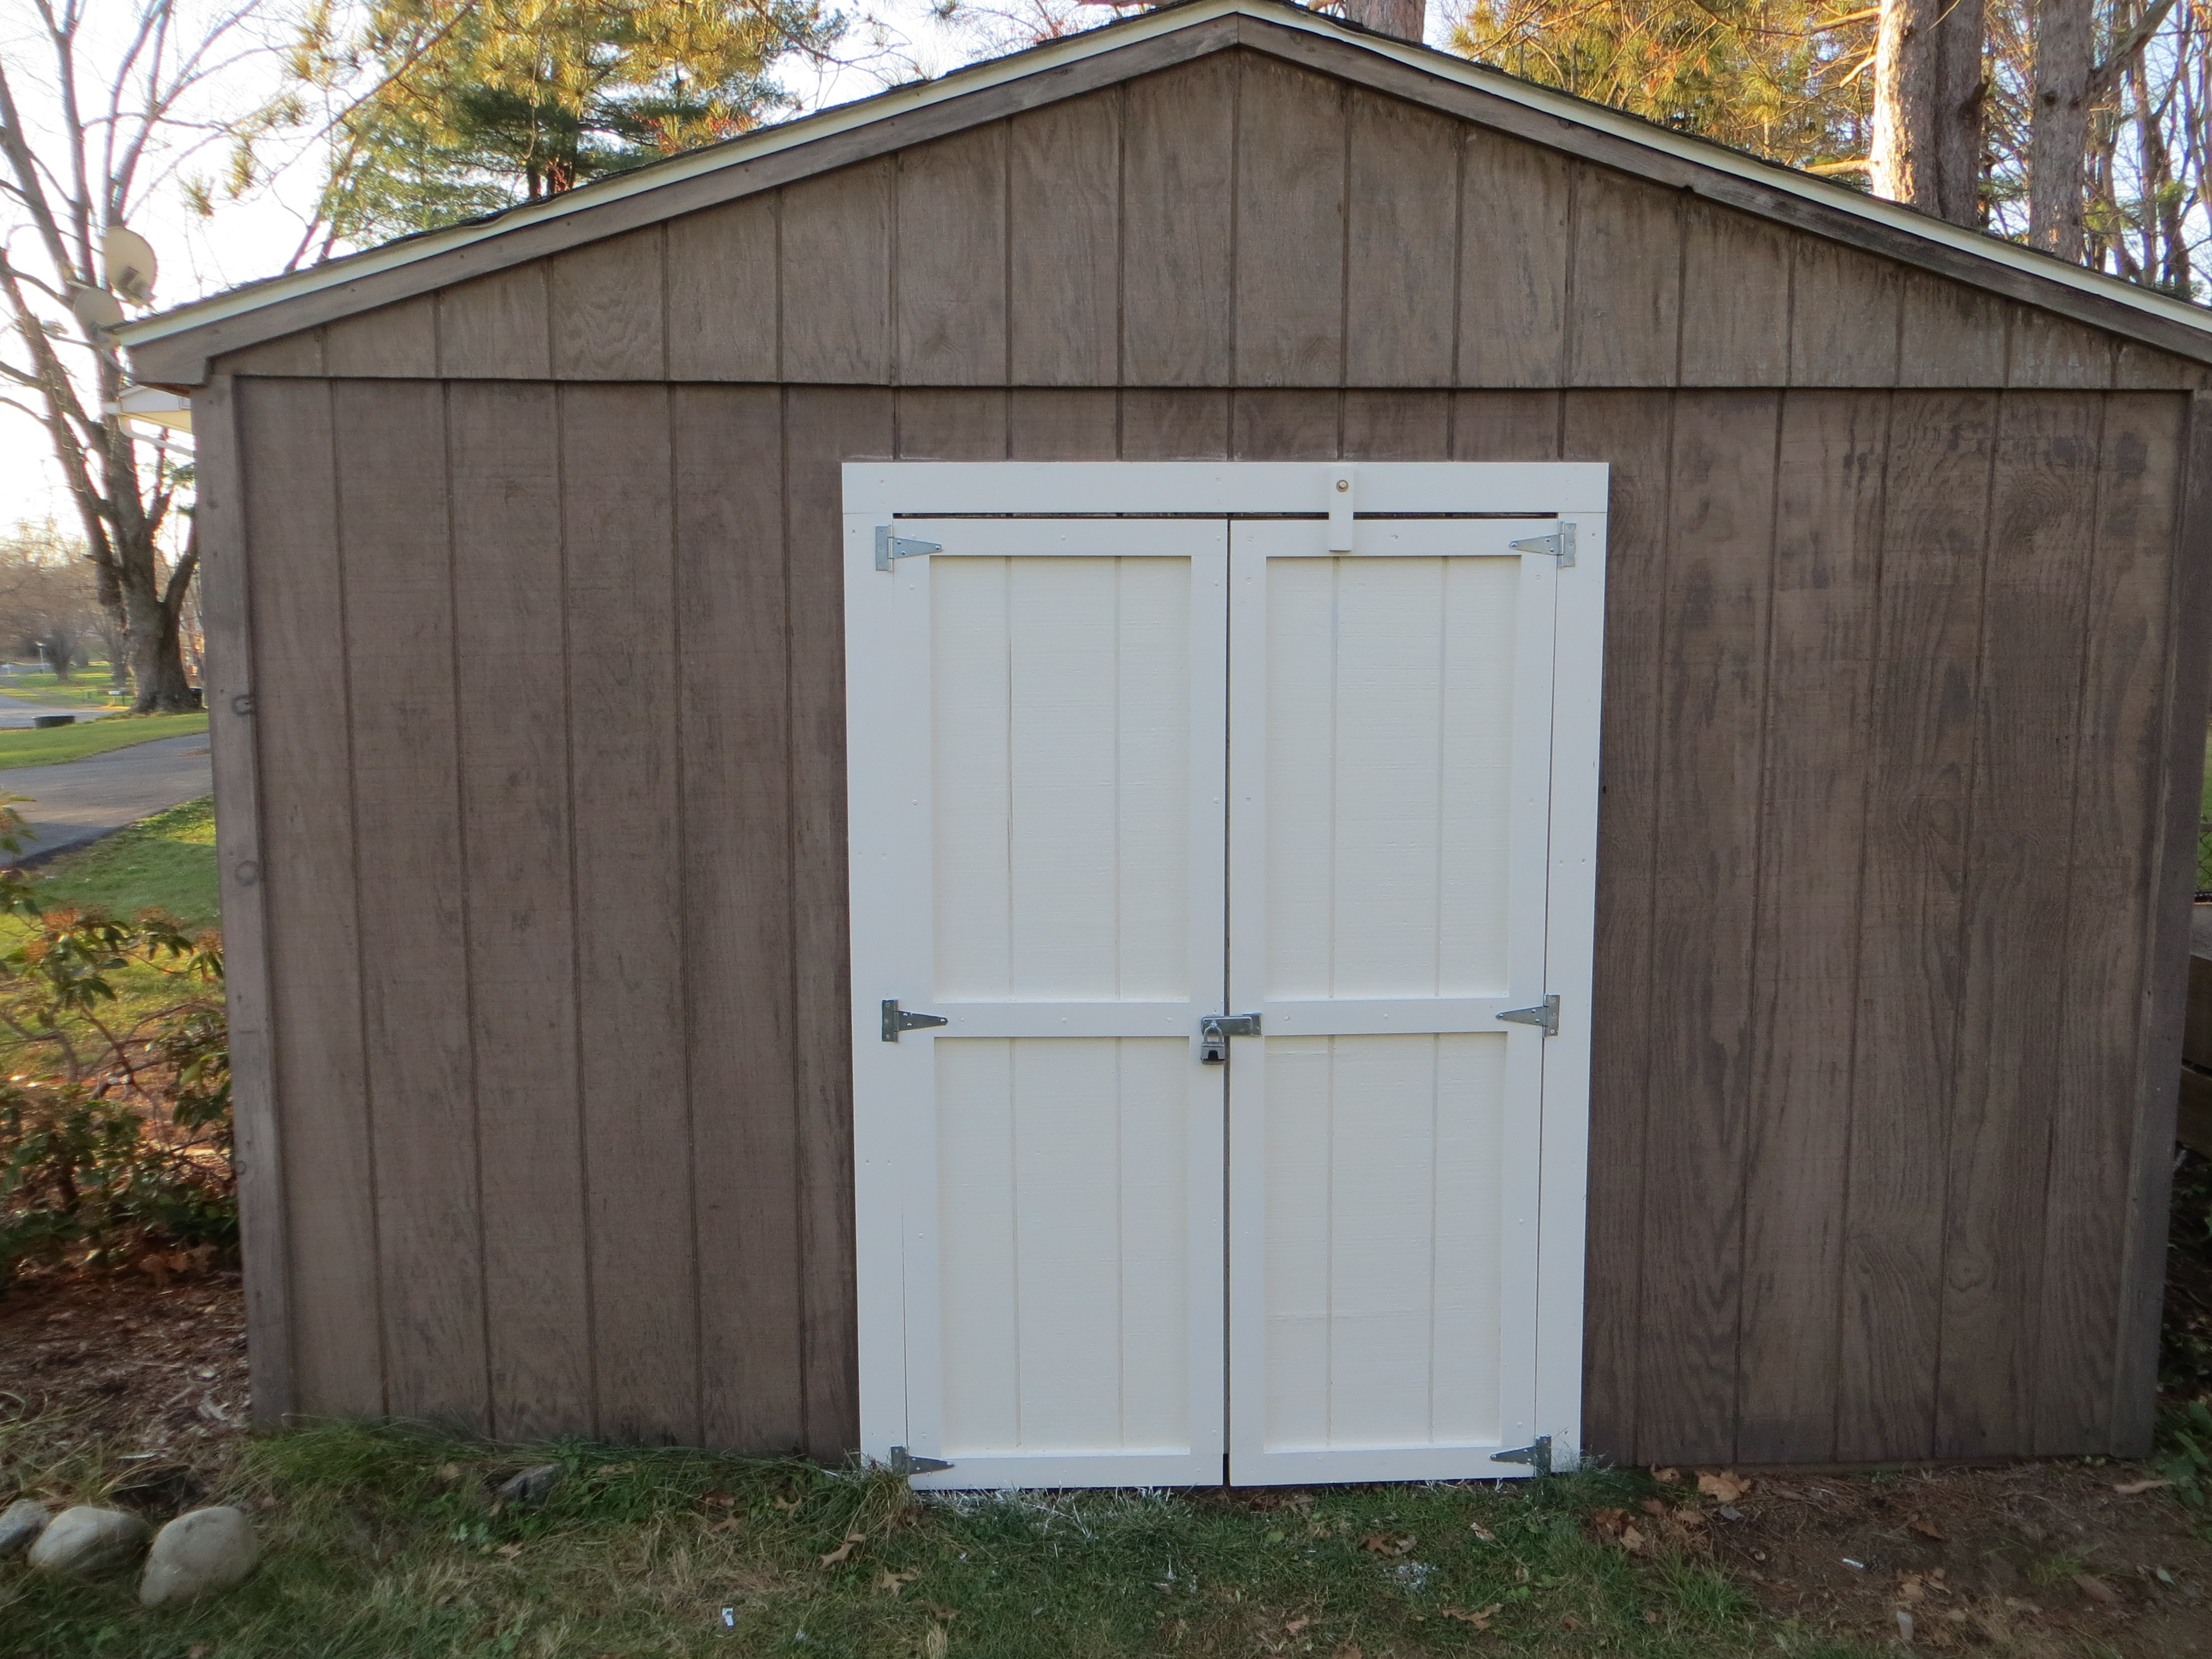 Special note to family Now I know there have been some complaints but opening the shed door it really quite easy if you follow these simple steps. & Most Glorious Shed Door Beautification Project | Happy Valley News Hour